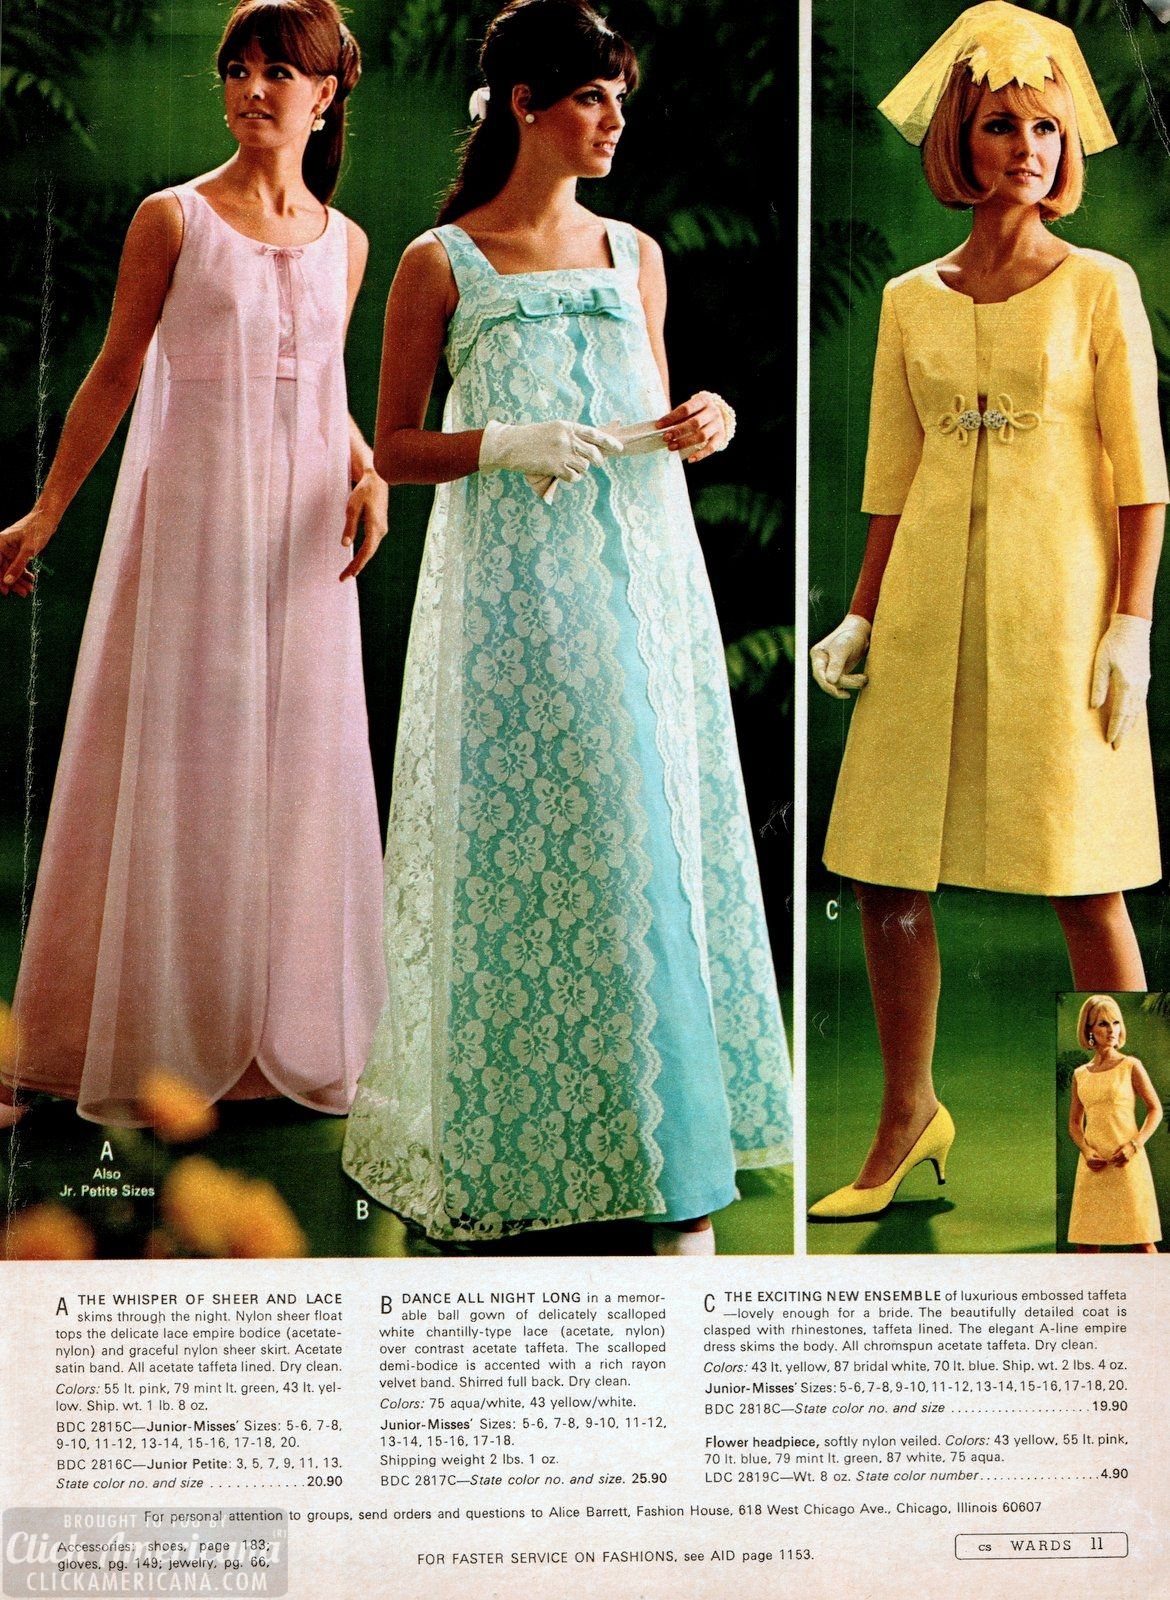 Simple And Stunning 60s Skirts Dresses From The 1968 Wards Catalog Vintage Outfits Fashion 1960 Fashion [ 1600 x 1170 Pixel ]